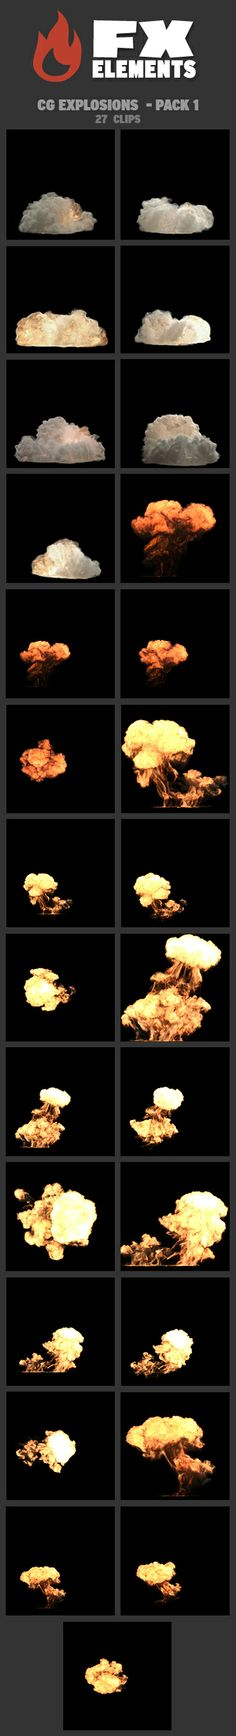 CG Explosions - Pack 1 includes 7 CG Dynamite clips: a variety of explosions with pyro flash and white smoke. It also includes 20 CG Gas Bomb clips: 5 gasoline explosions with black smoke shown from 4 different angles each: close-up, wide shot, high 45 ° angle and aerial view. • All clips include an Alpha channel • All clips include a Depth matte • 22 clips horizontal 2K resolution (2048×1556) • 5 clips vertical 2K resolution (1556 x 2048) • ProRes 4444 Quicktime files